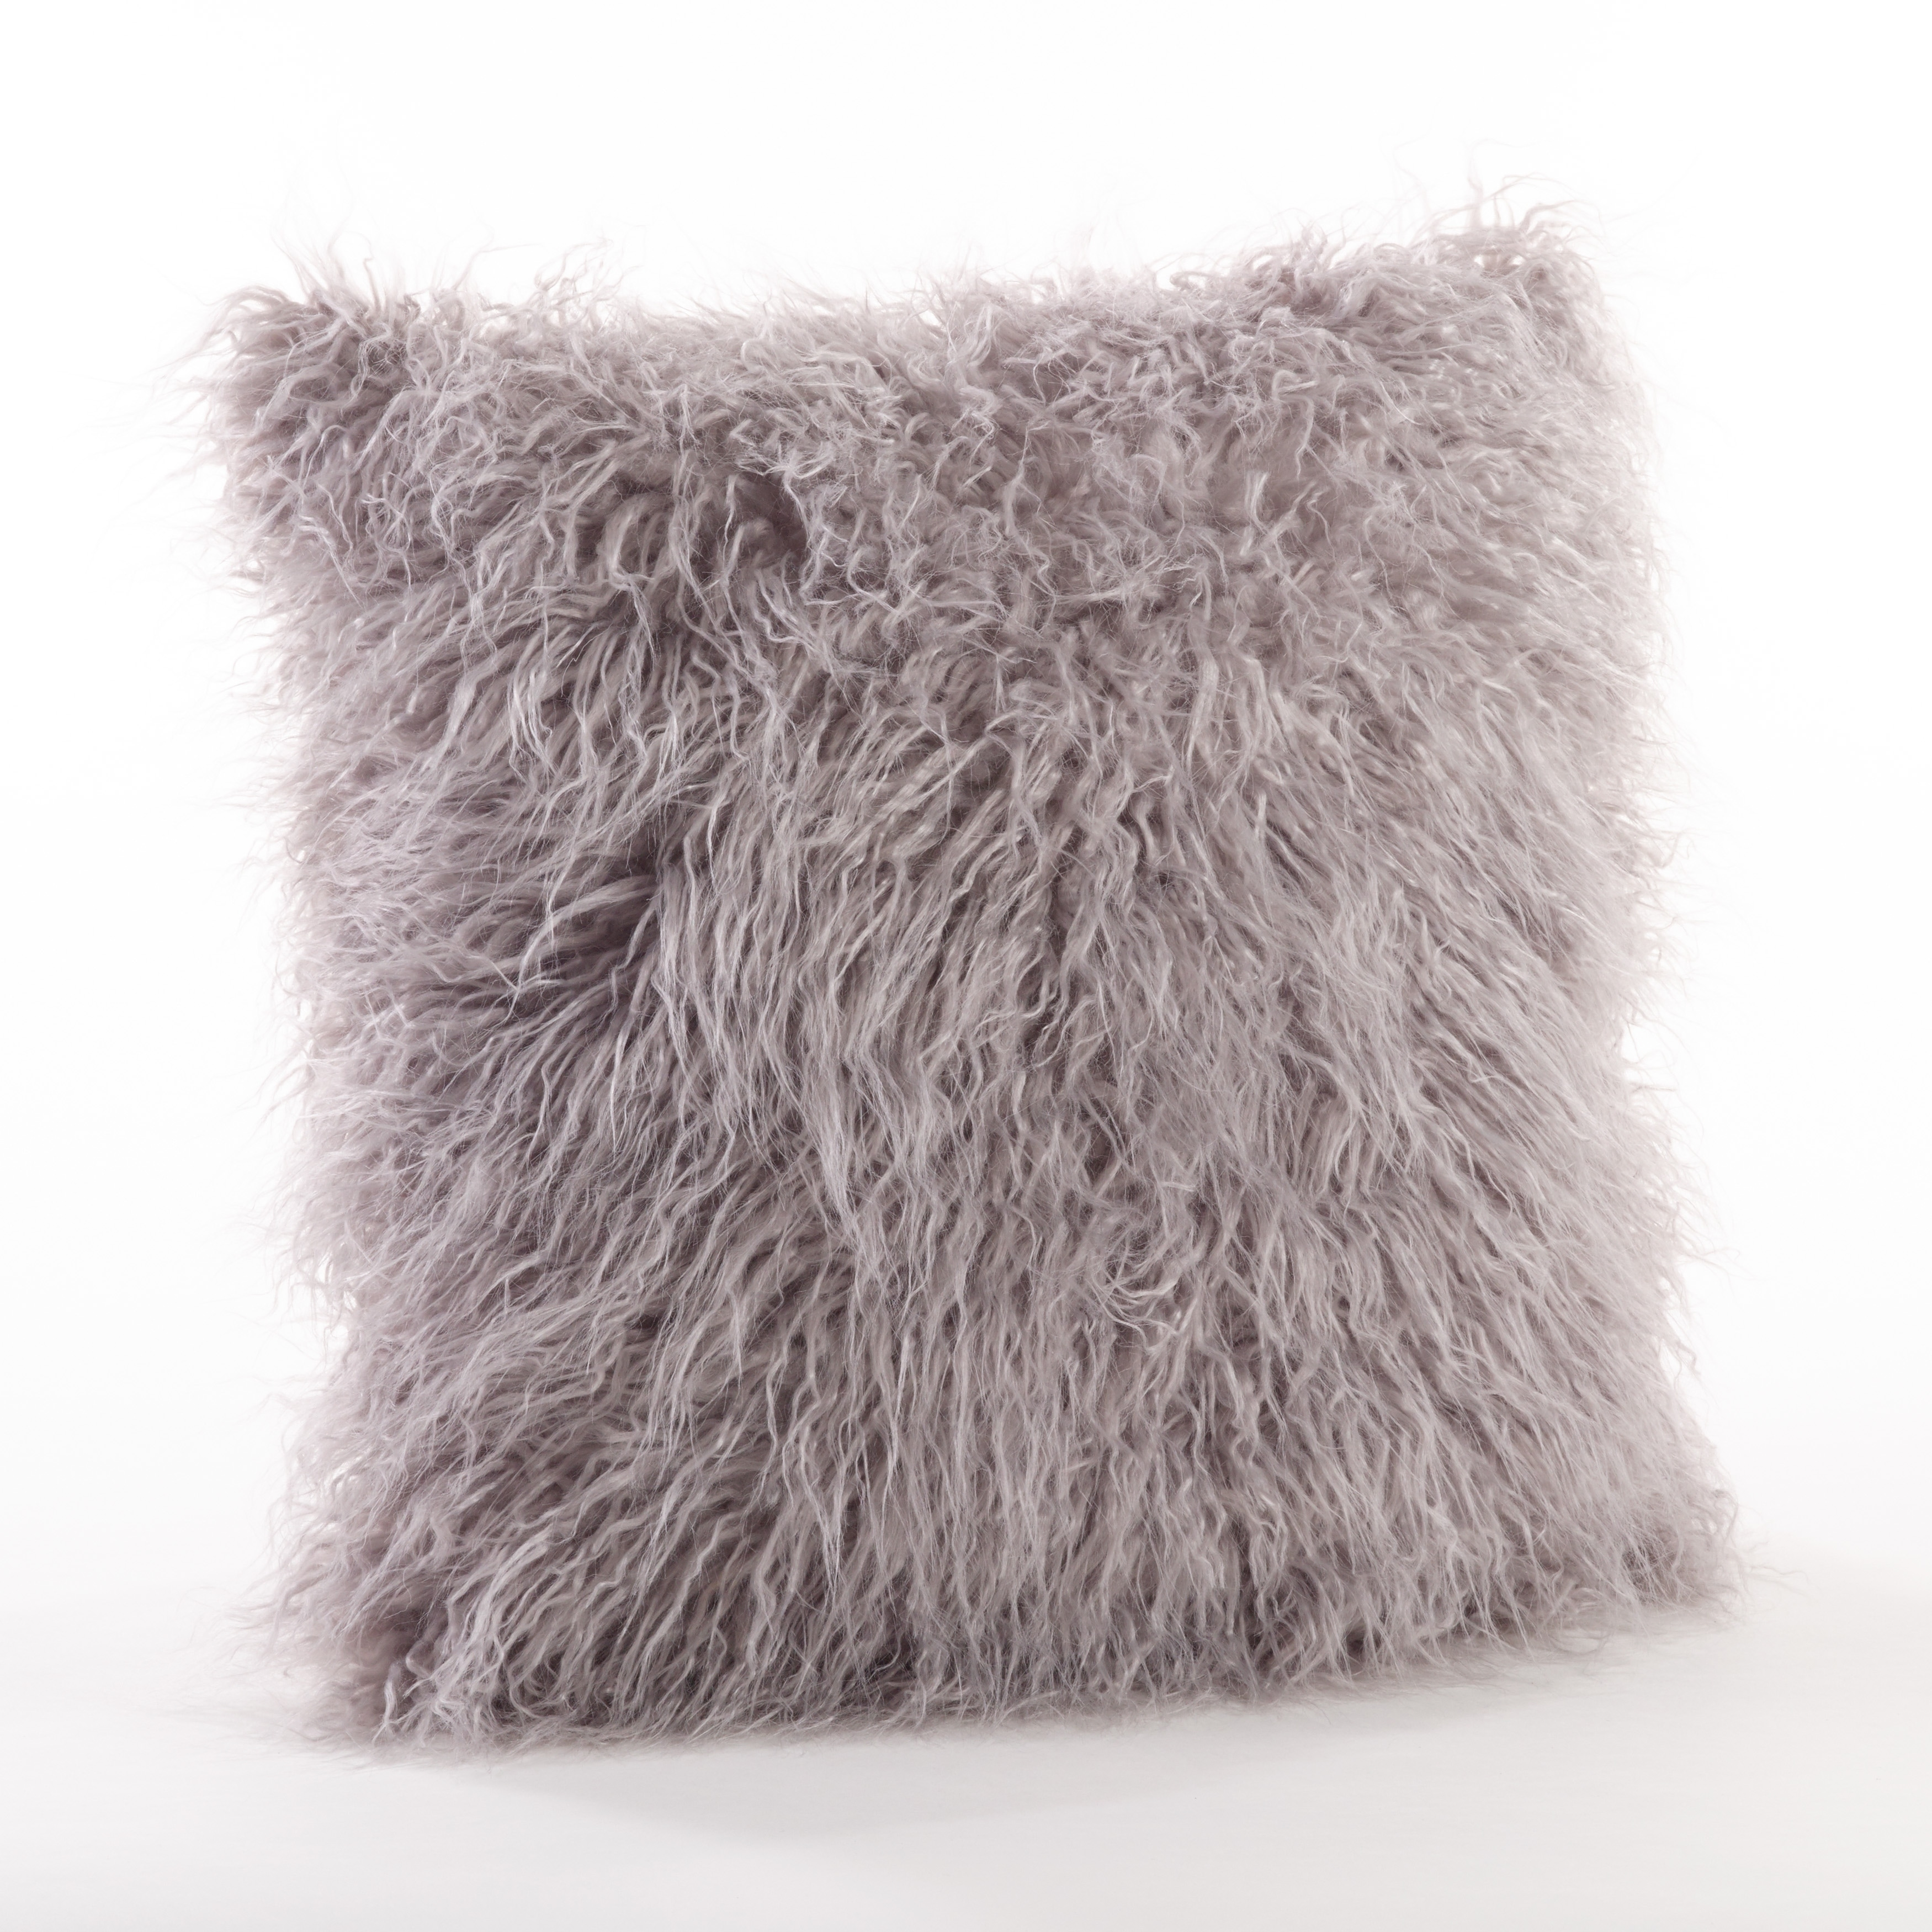 Buy Faux Fur Throw Pillows Online At Overstock Our Best